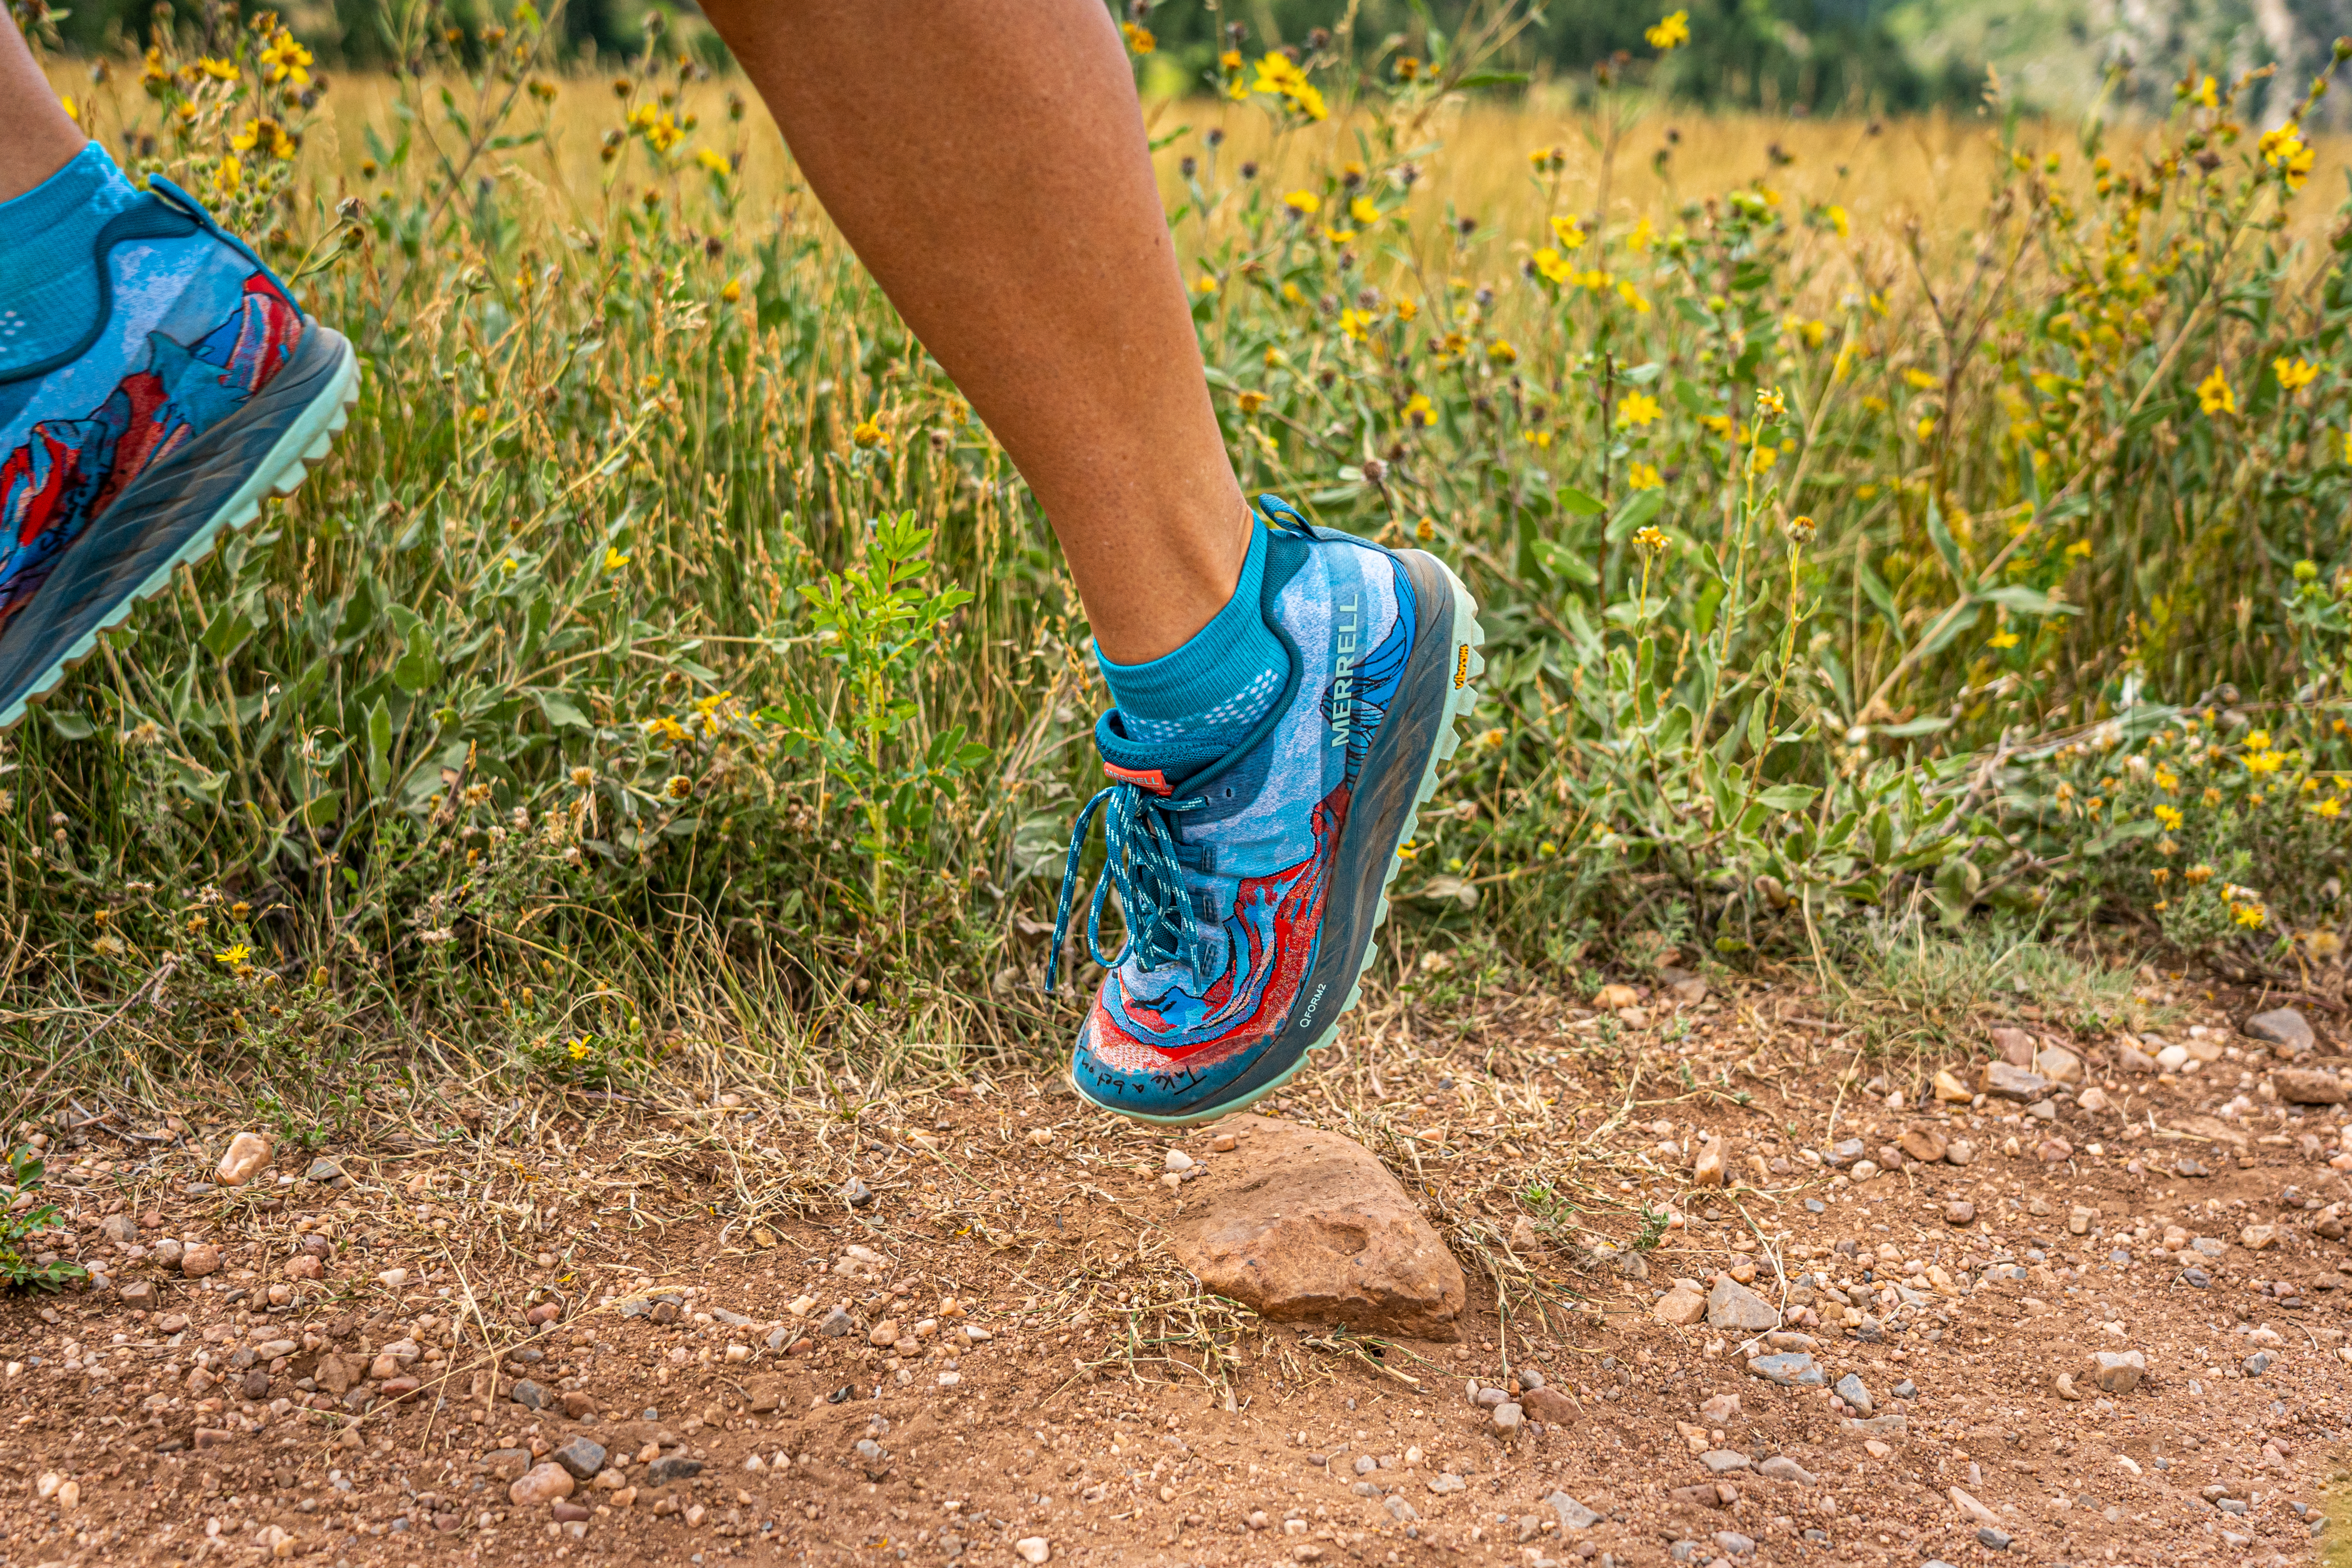 First Look: Merrell x Trail Sisters Antora Trail Runner  Trail Runner